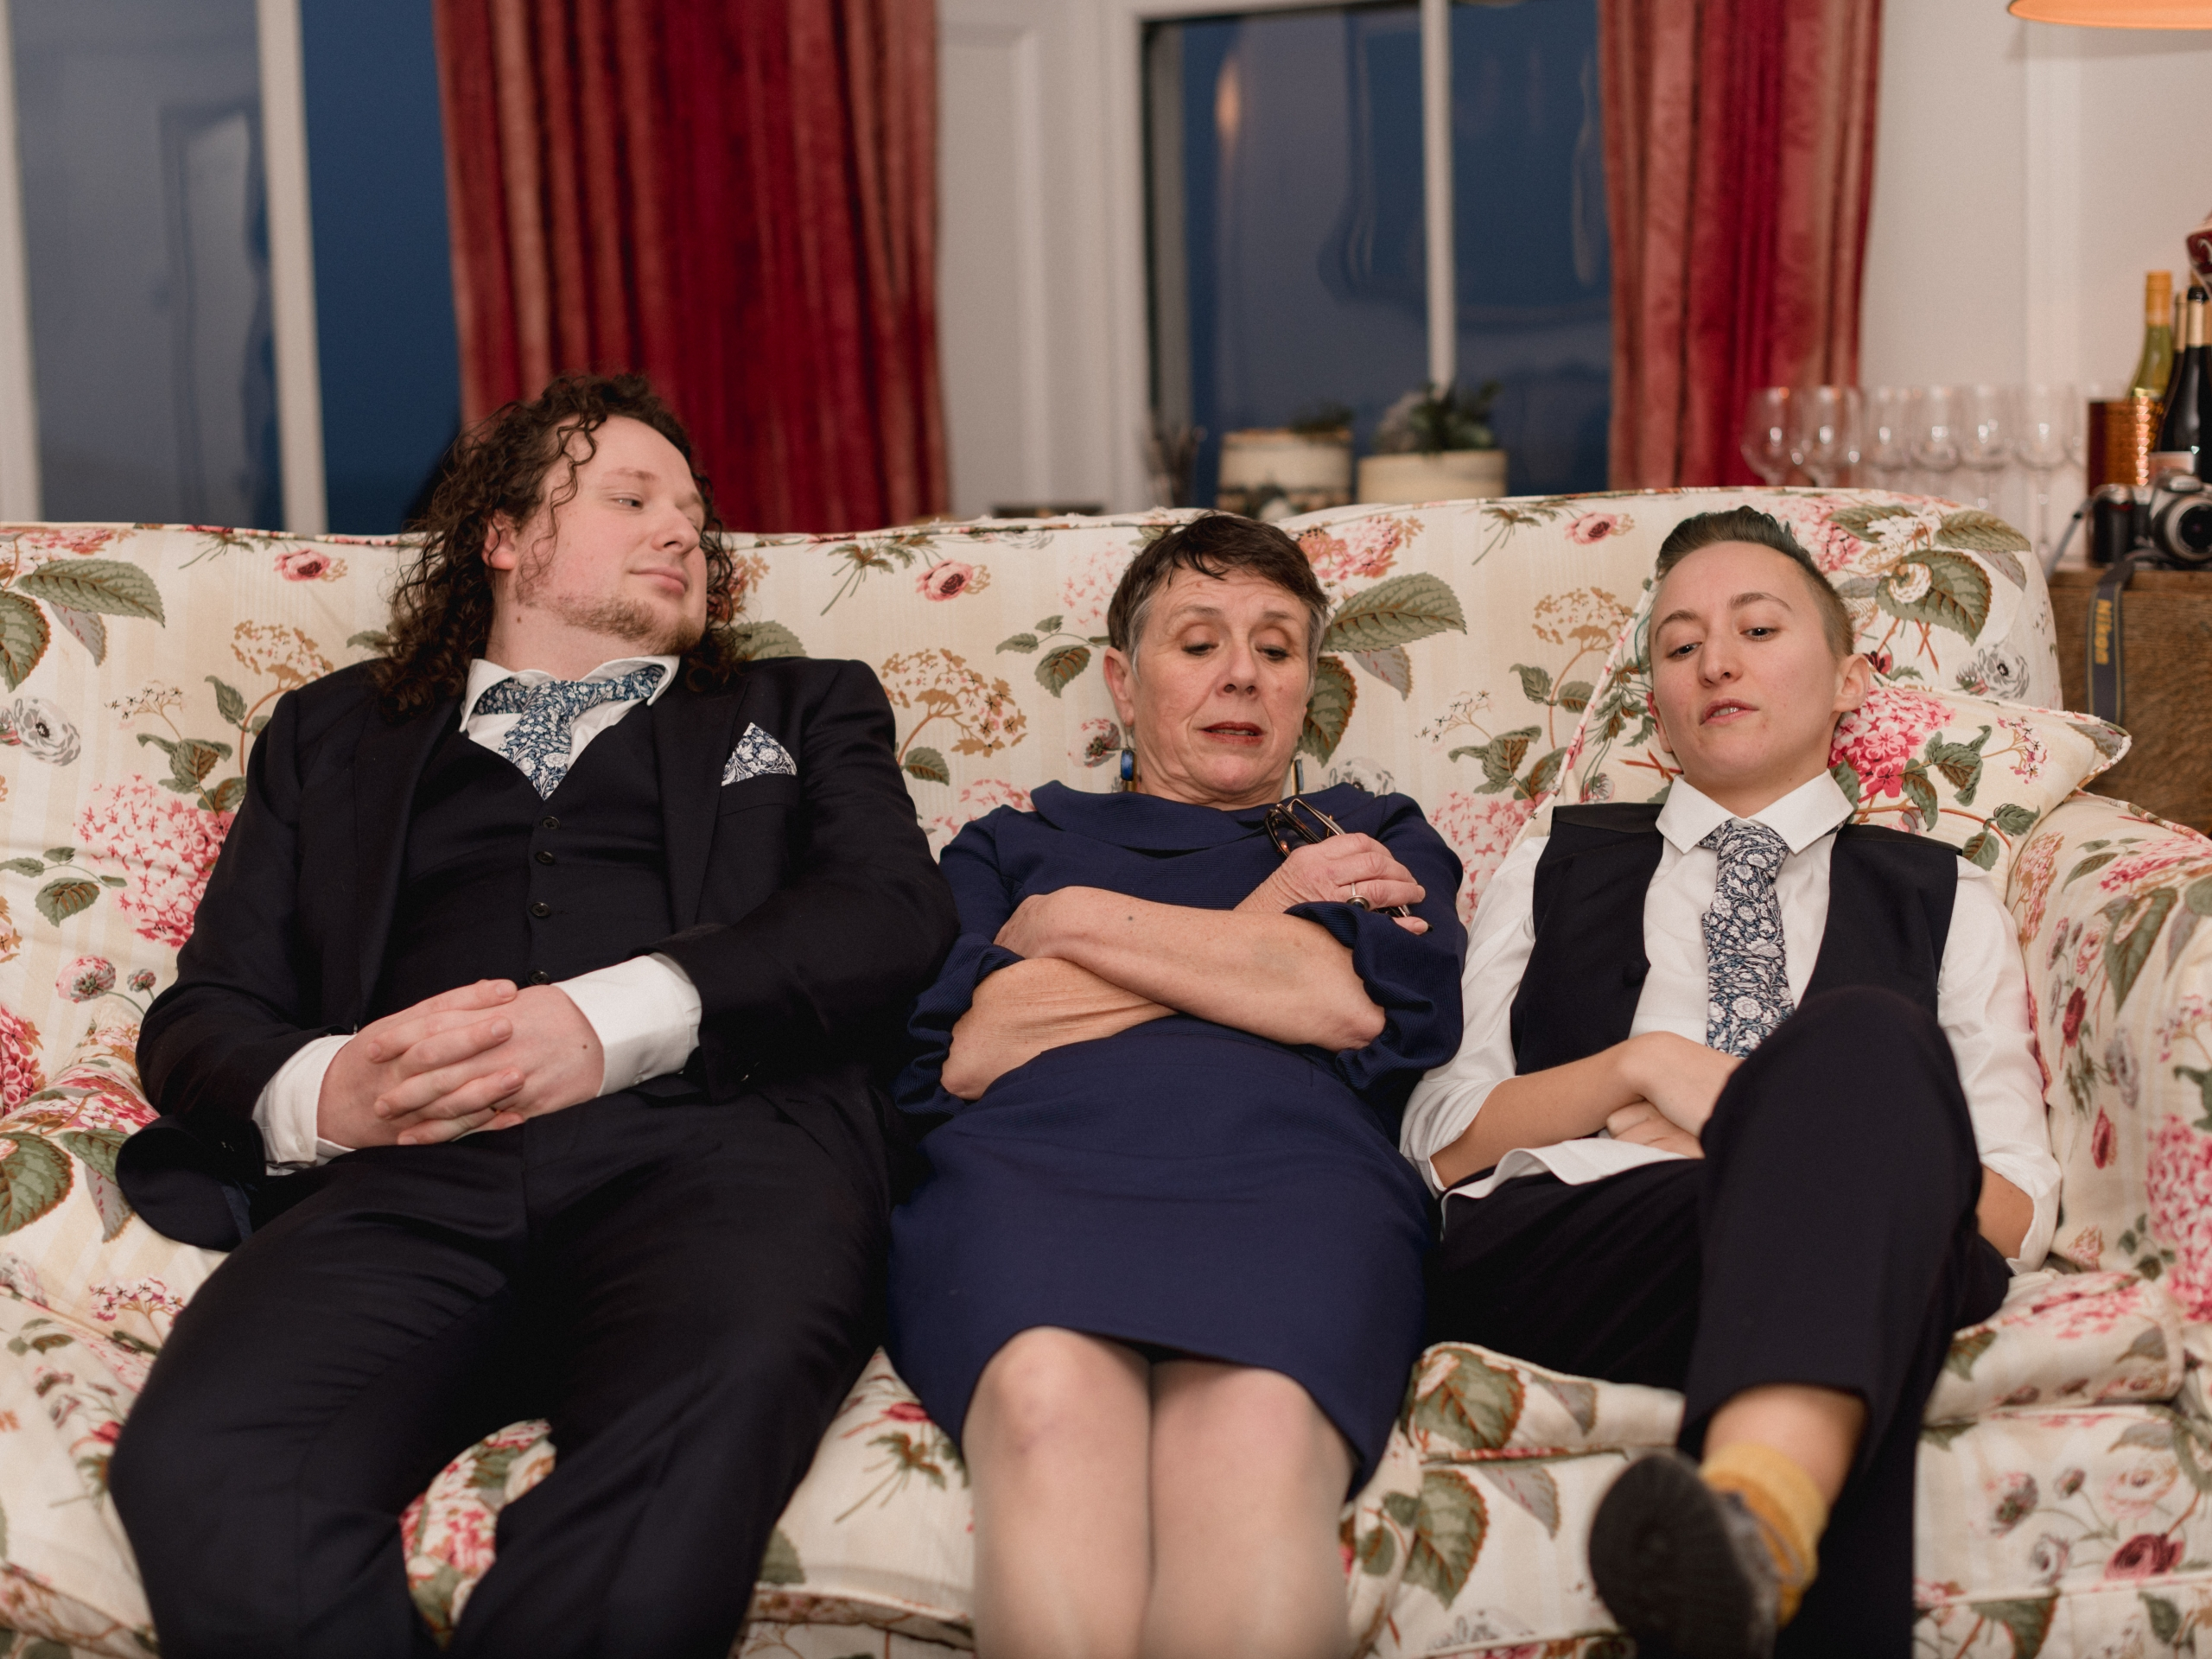 Three people slouch on a floral couch; one in a navy suit, one in a navy dress, and one in a white shirt and navy waistcoat